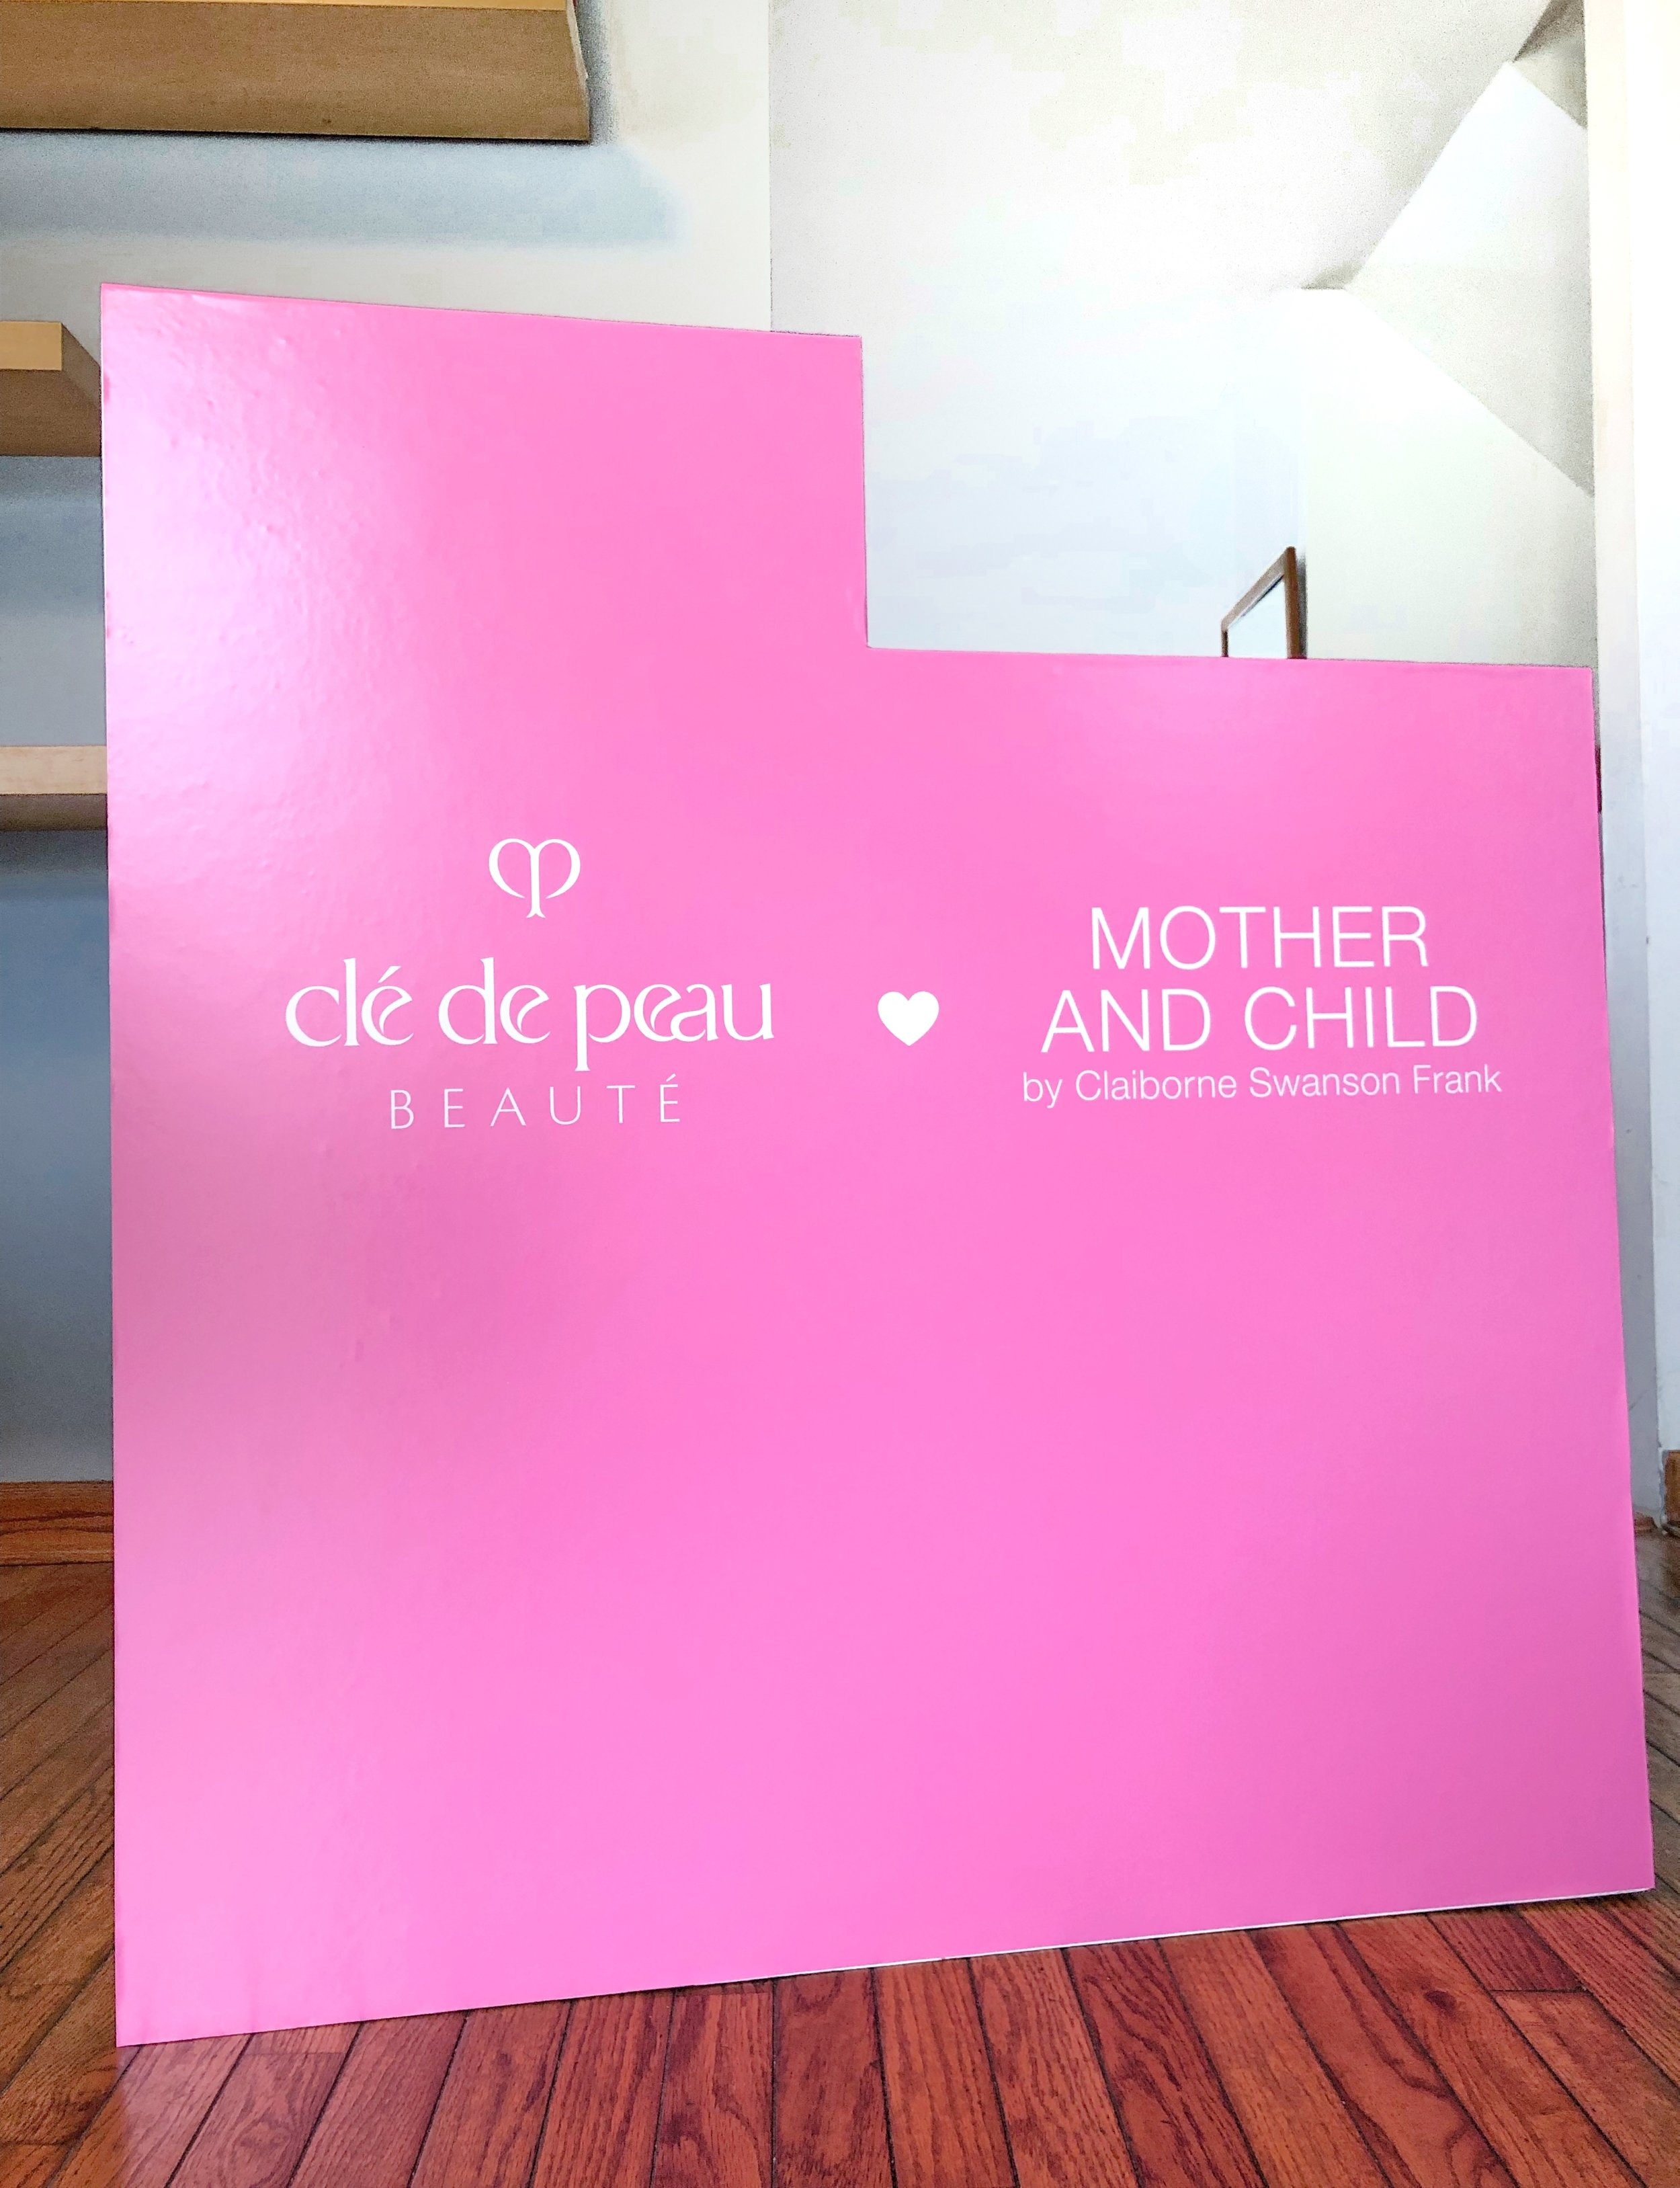 Branded Counter Wrap for Clé de Peau Book Launch for Claiborne Swanson Frank